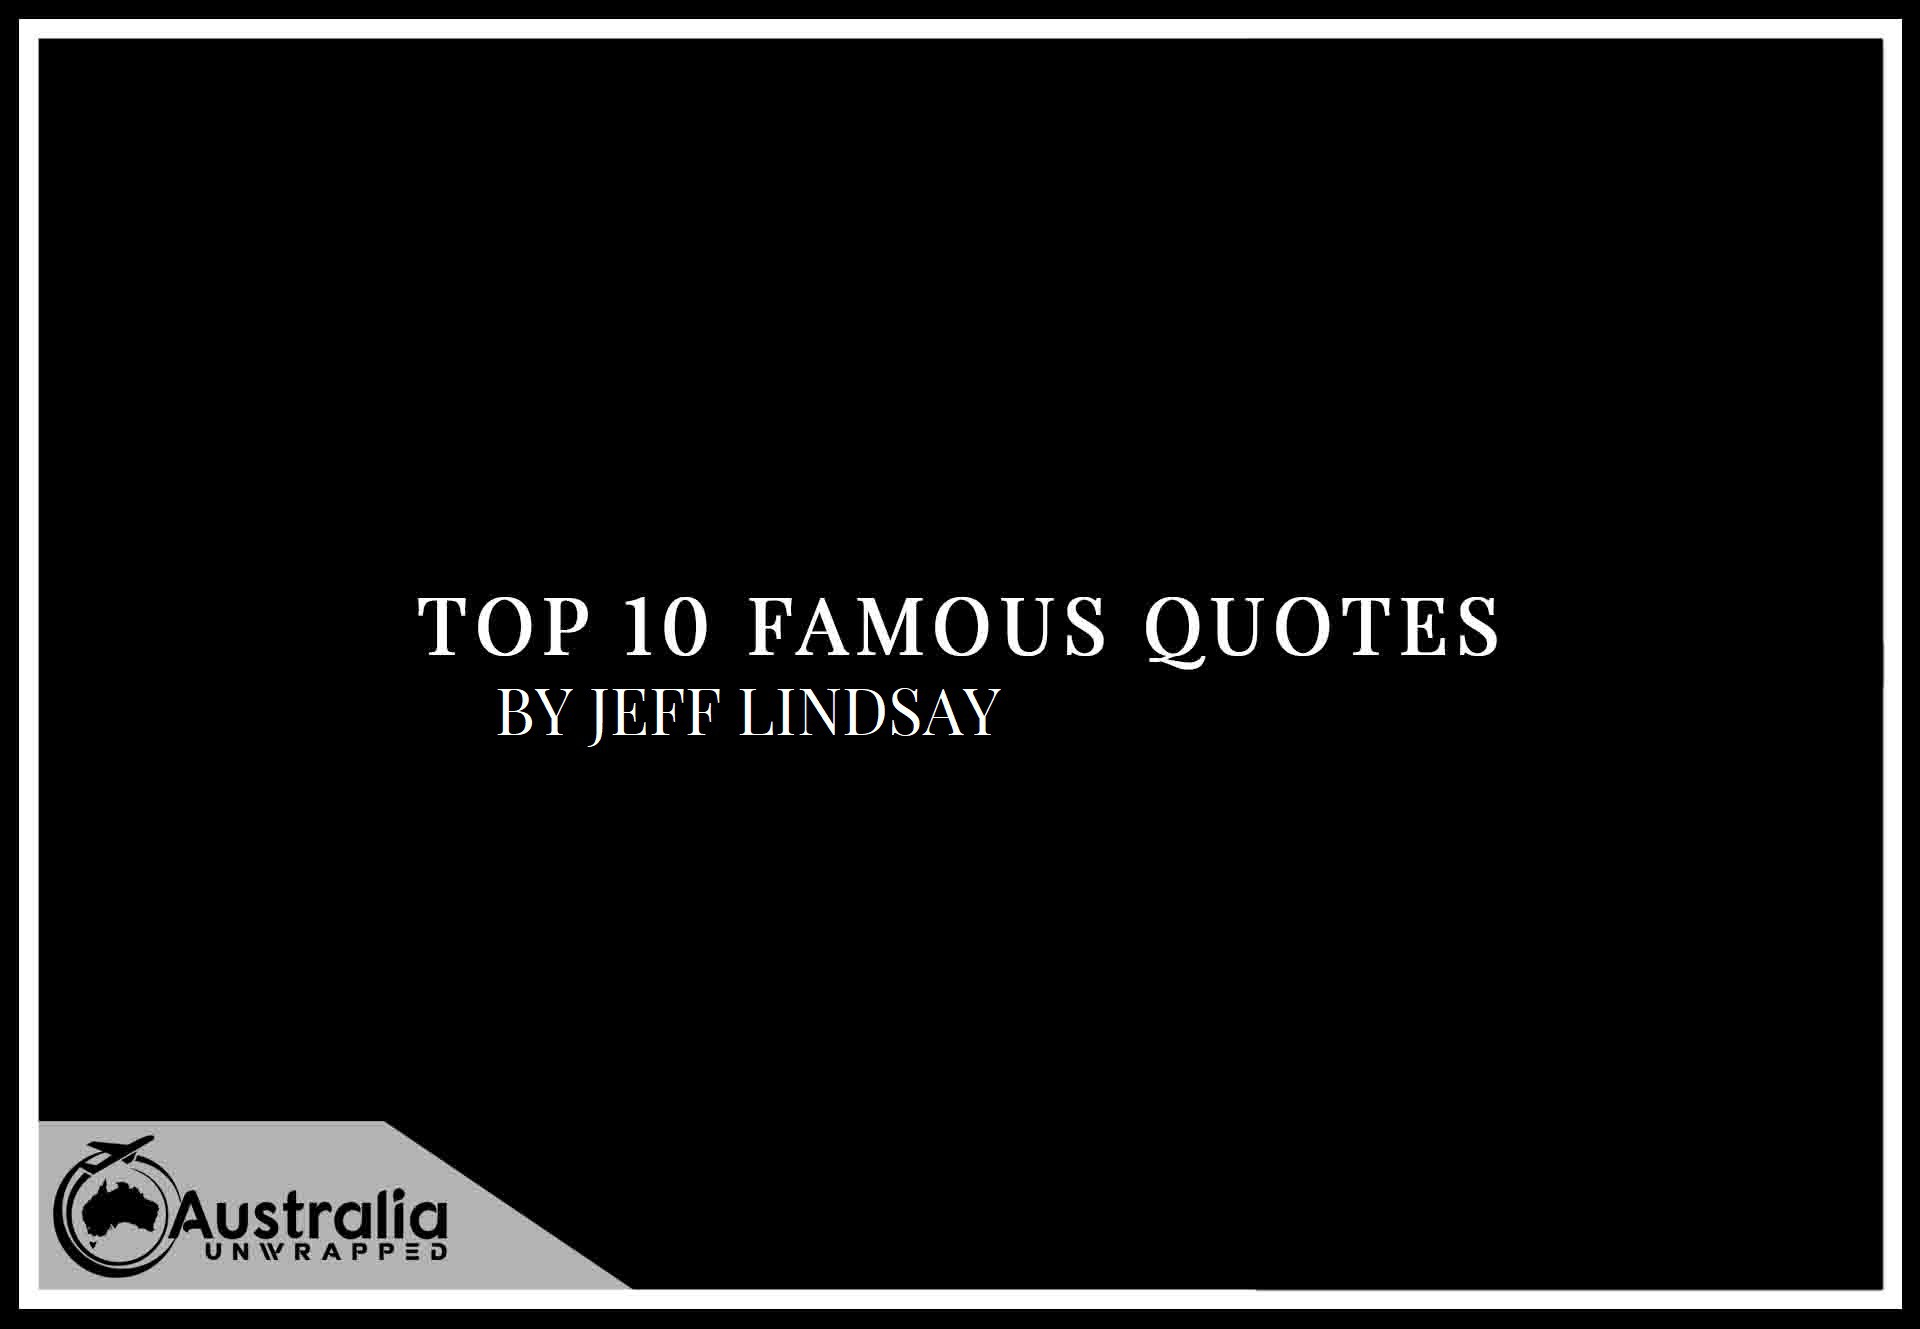 Top 10 Famous Quotes by Author Jeff Lindsay